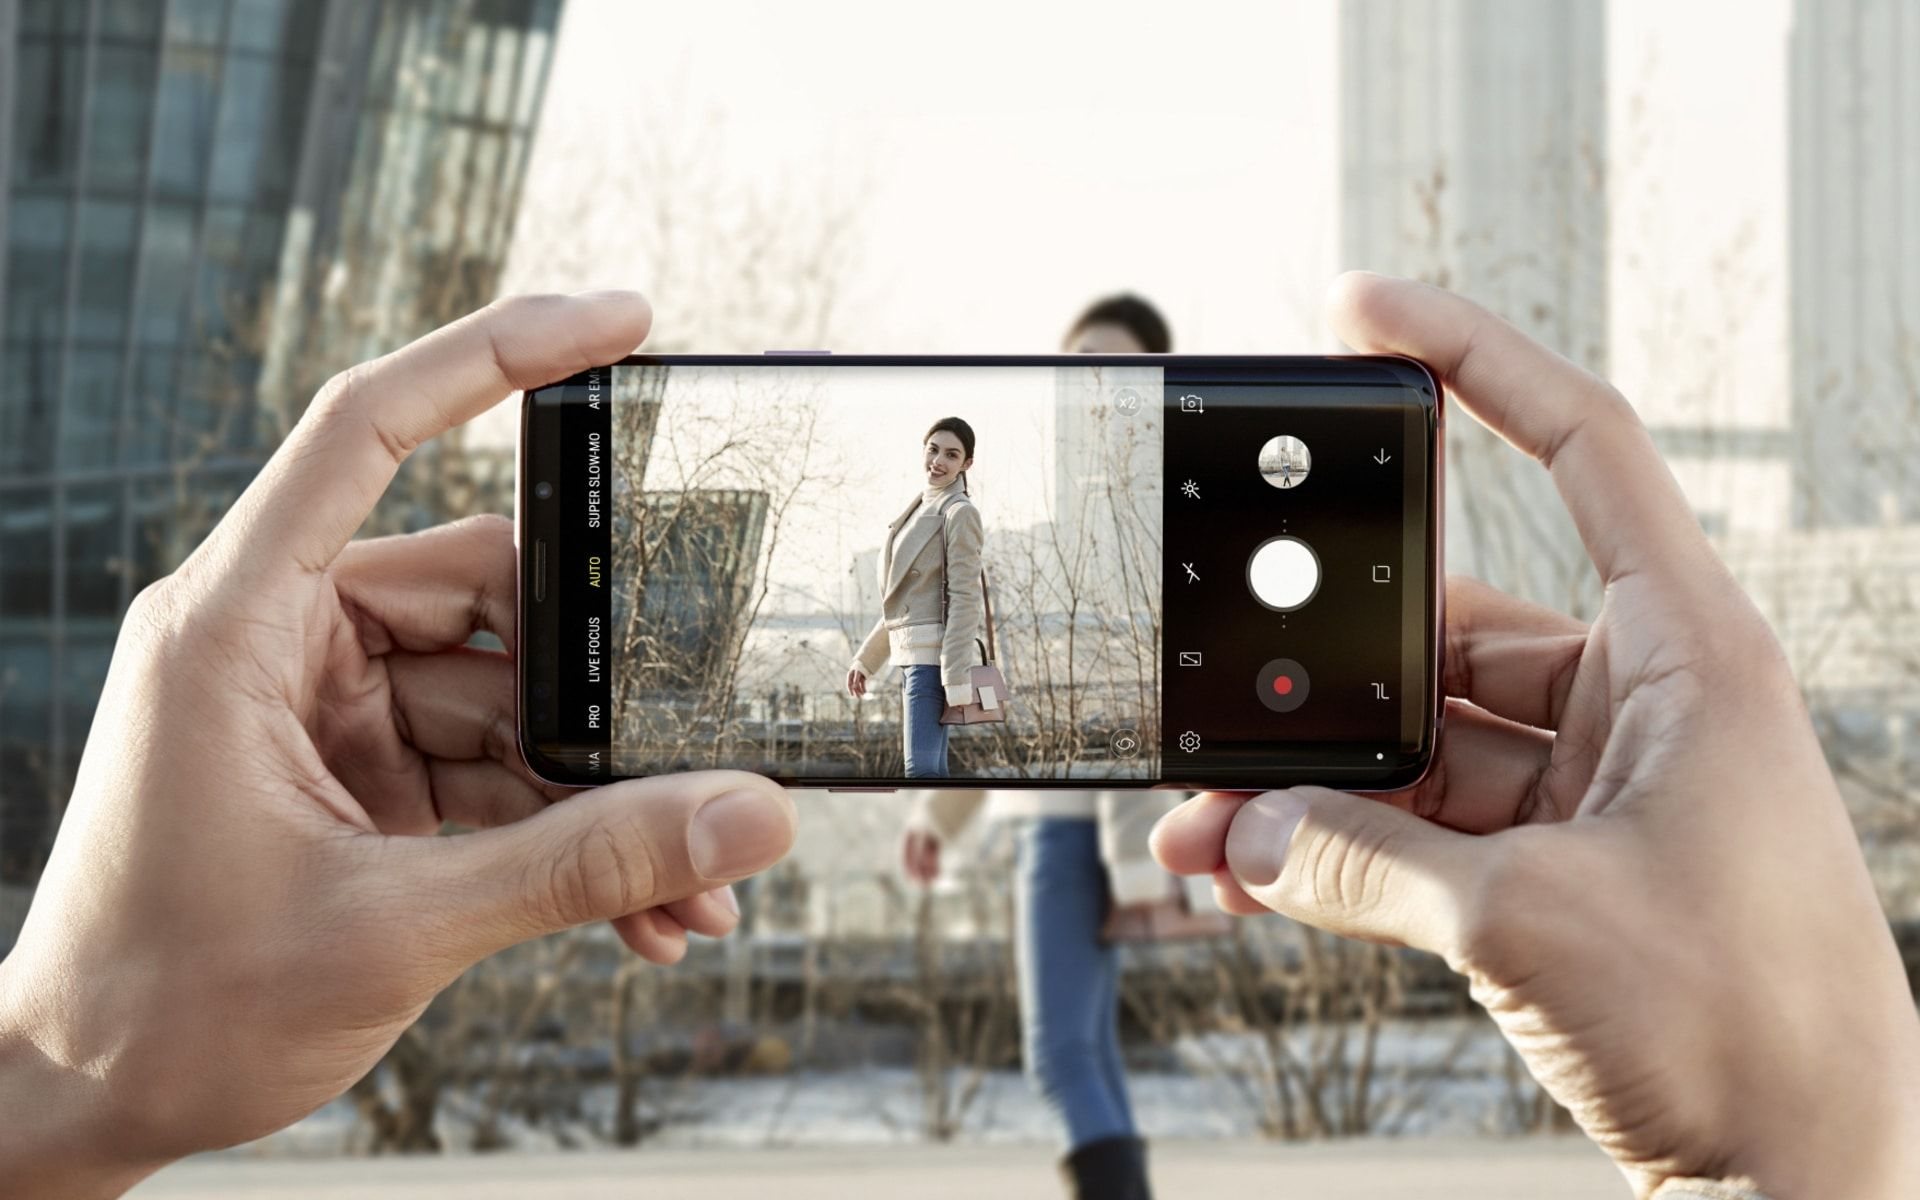 5 Reasons To Love The New Samsung Galaxy S9 And S9+